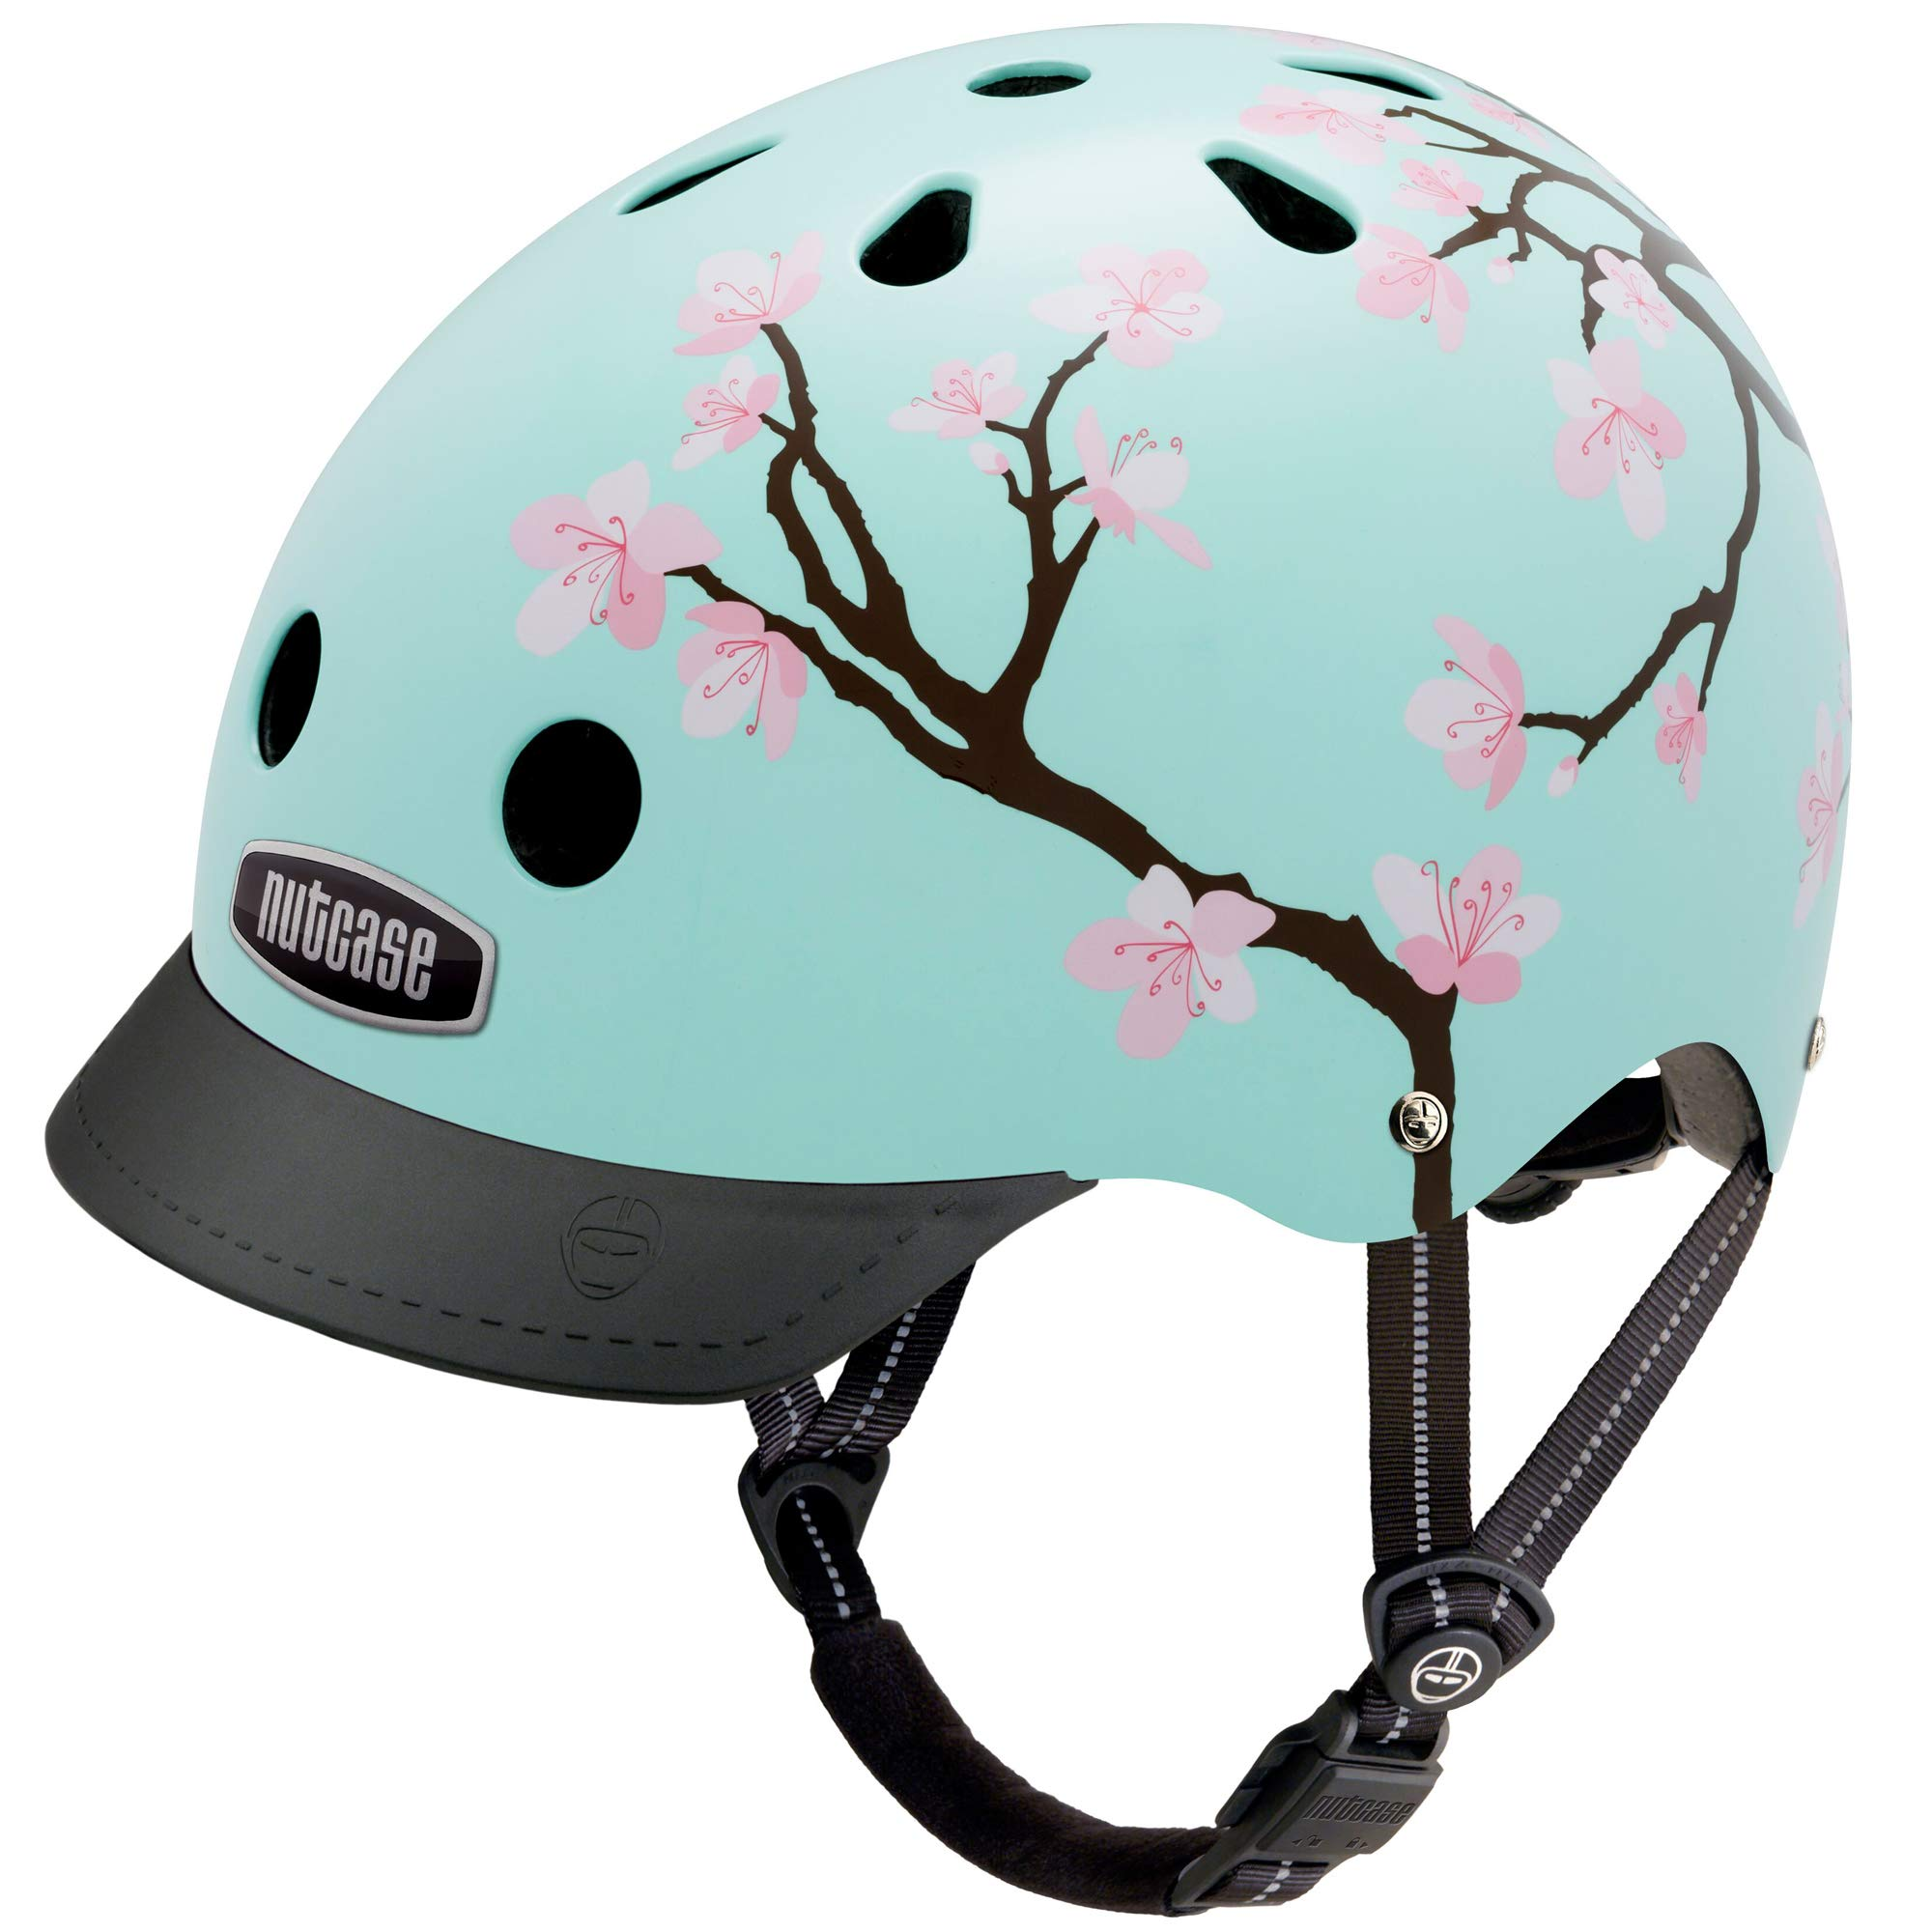 Nutcase - Patterned Street Bike Helmet for Adults, Cherry Blossoms, Small by Nutcase